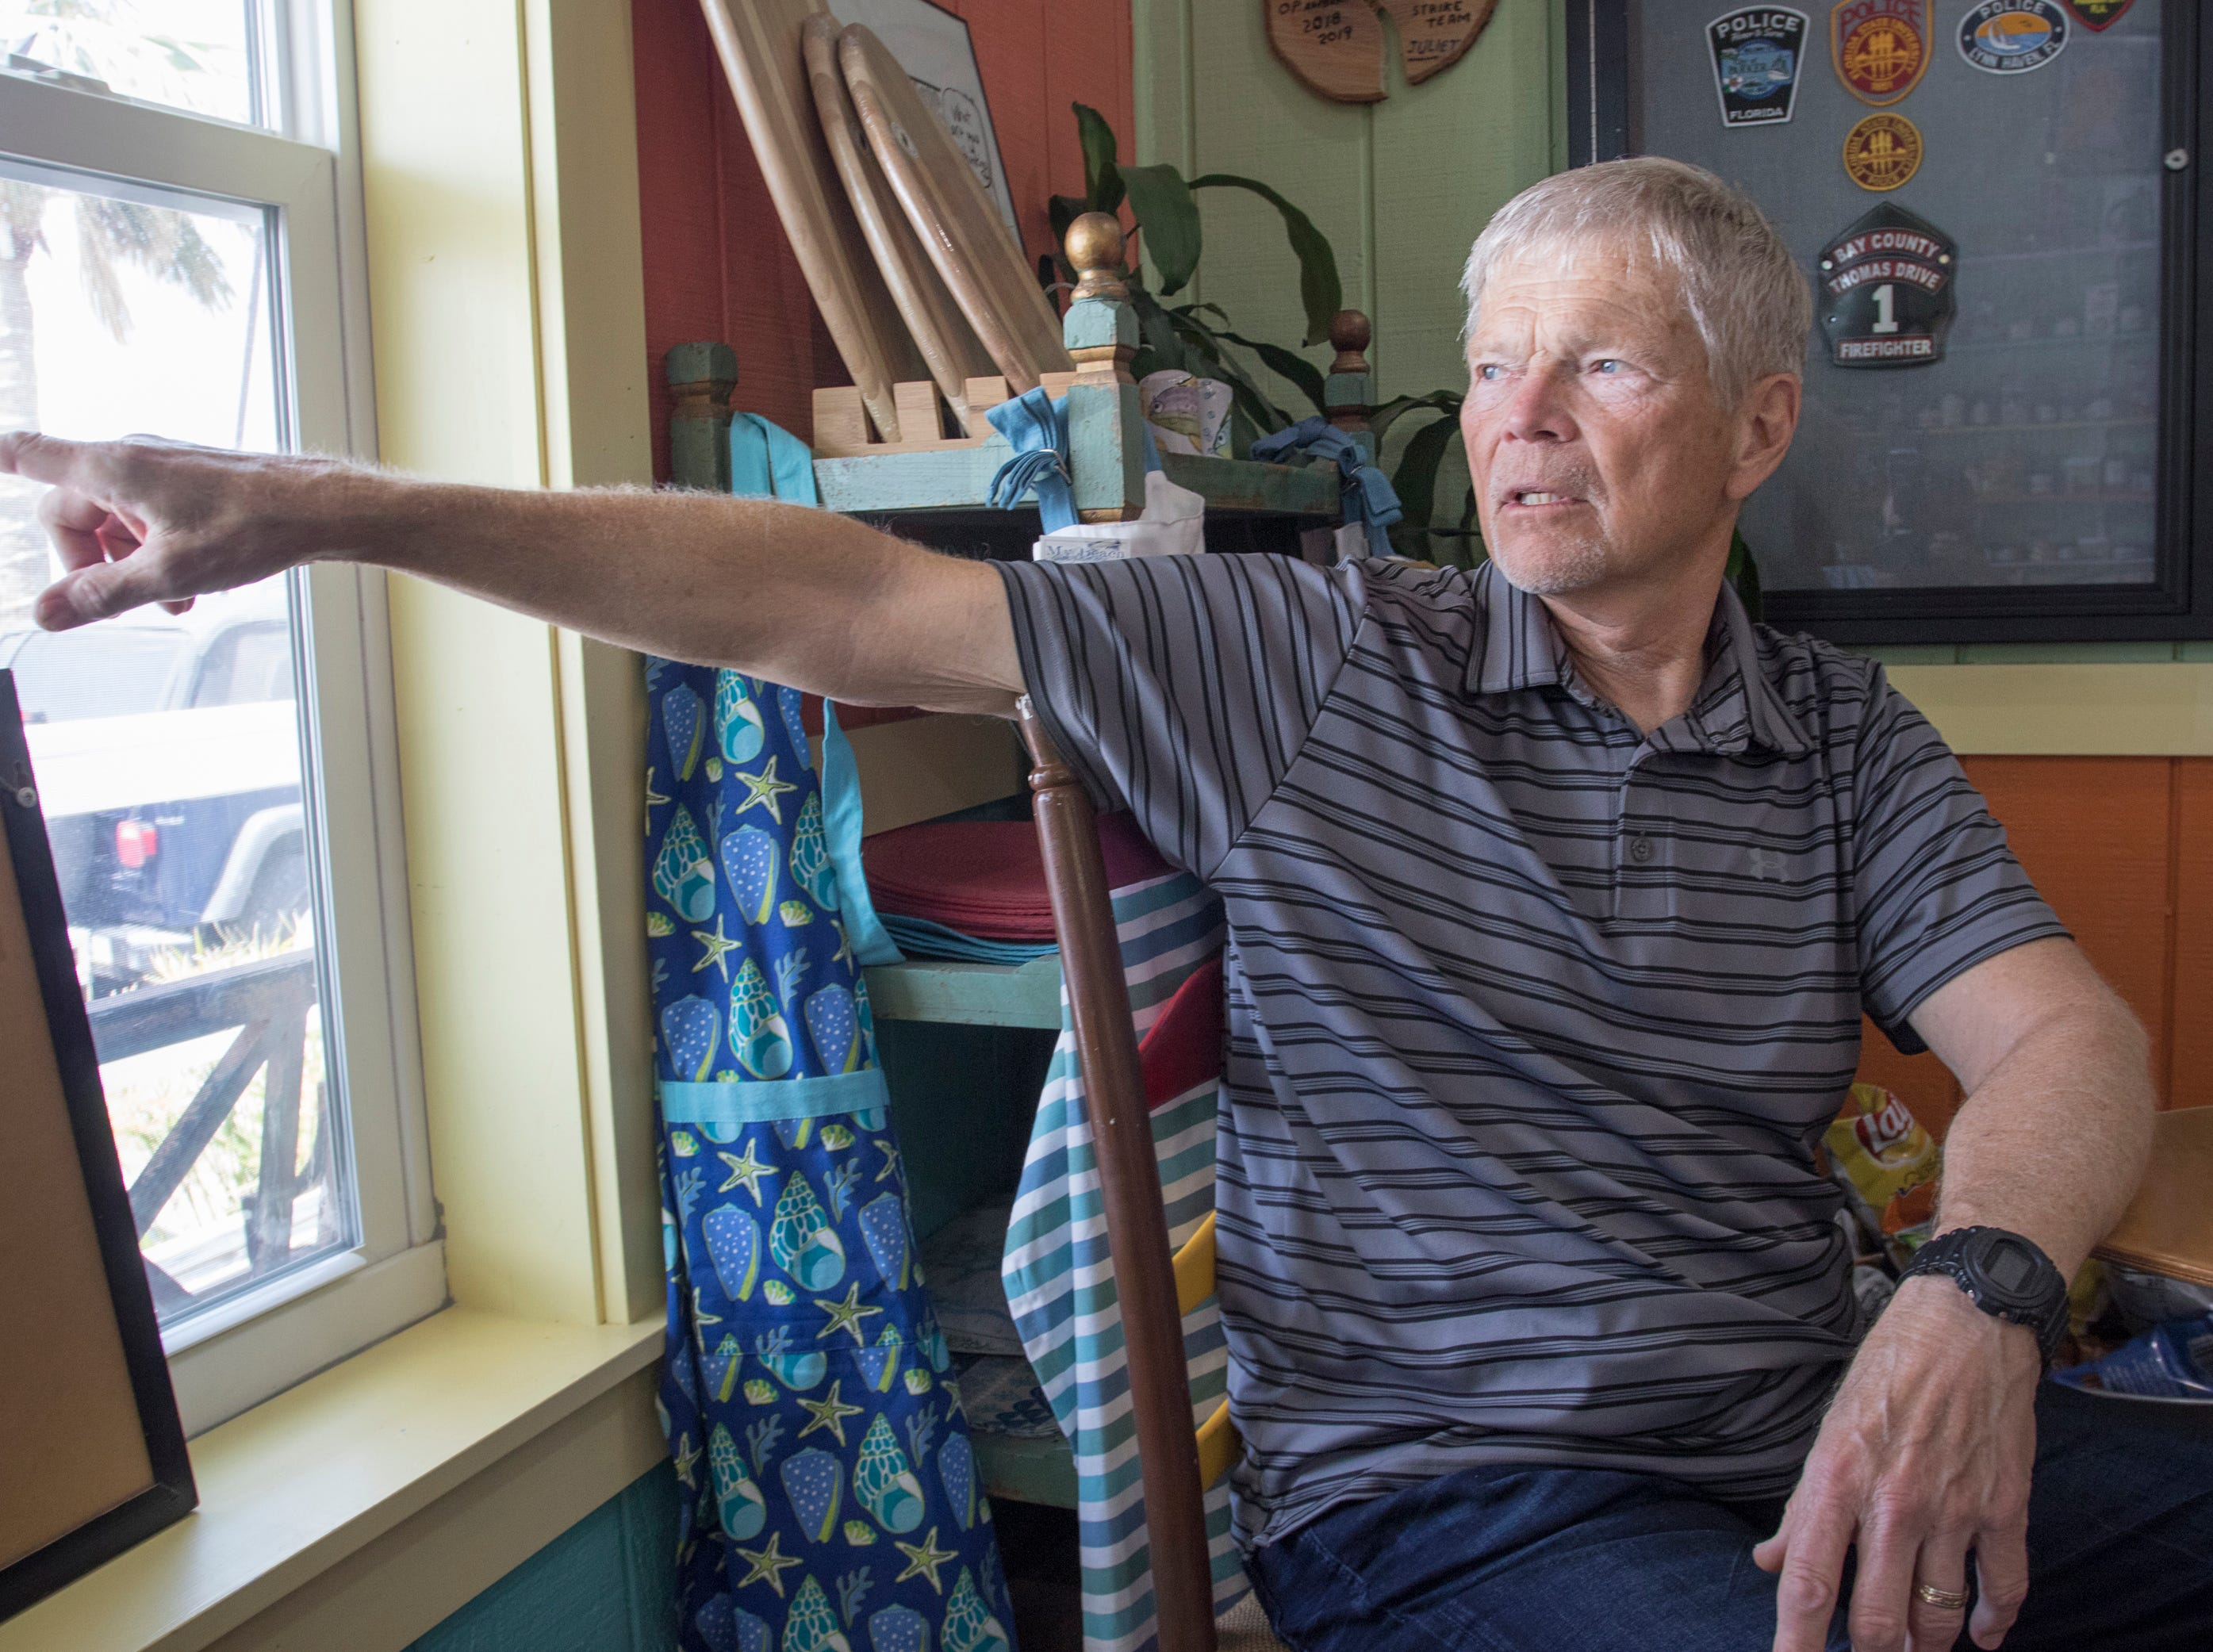 Local resident Charlie Dana Black talks about surviving Hurricane Michael and the great damage it did to the Mexico Beach area of Florida on Wednesday, May 8, 2019.  Michael made landfall as a Category 5 hurricane between Mexico Beach and Tyndall Air Force Base on October 10, 2018.